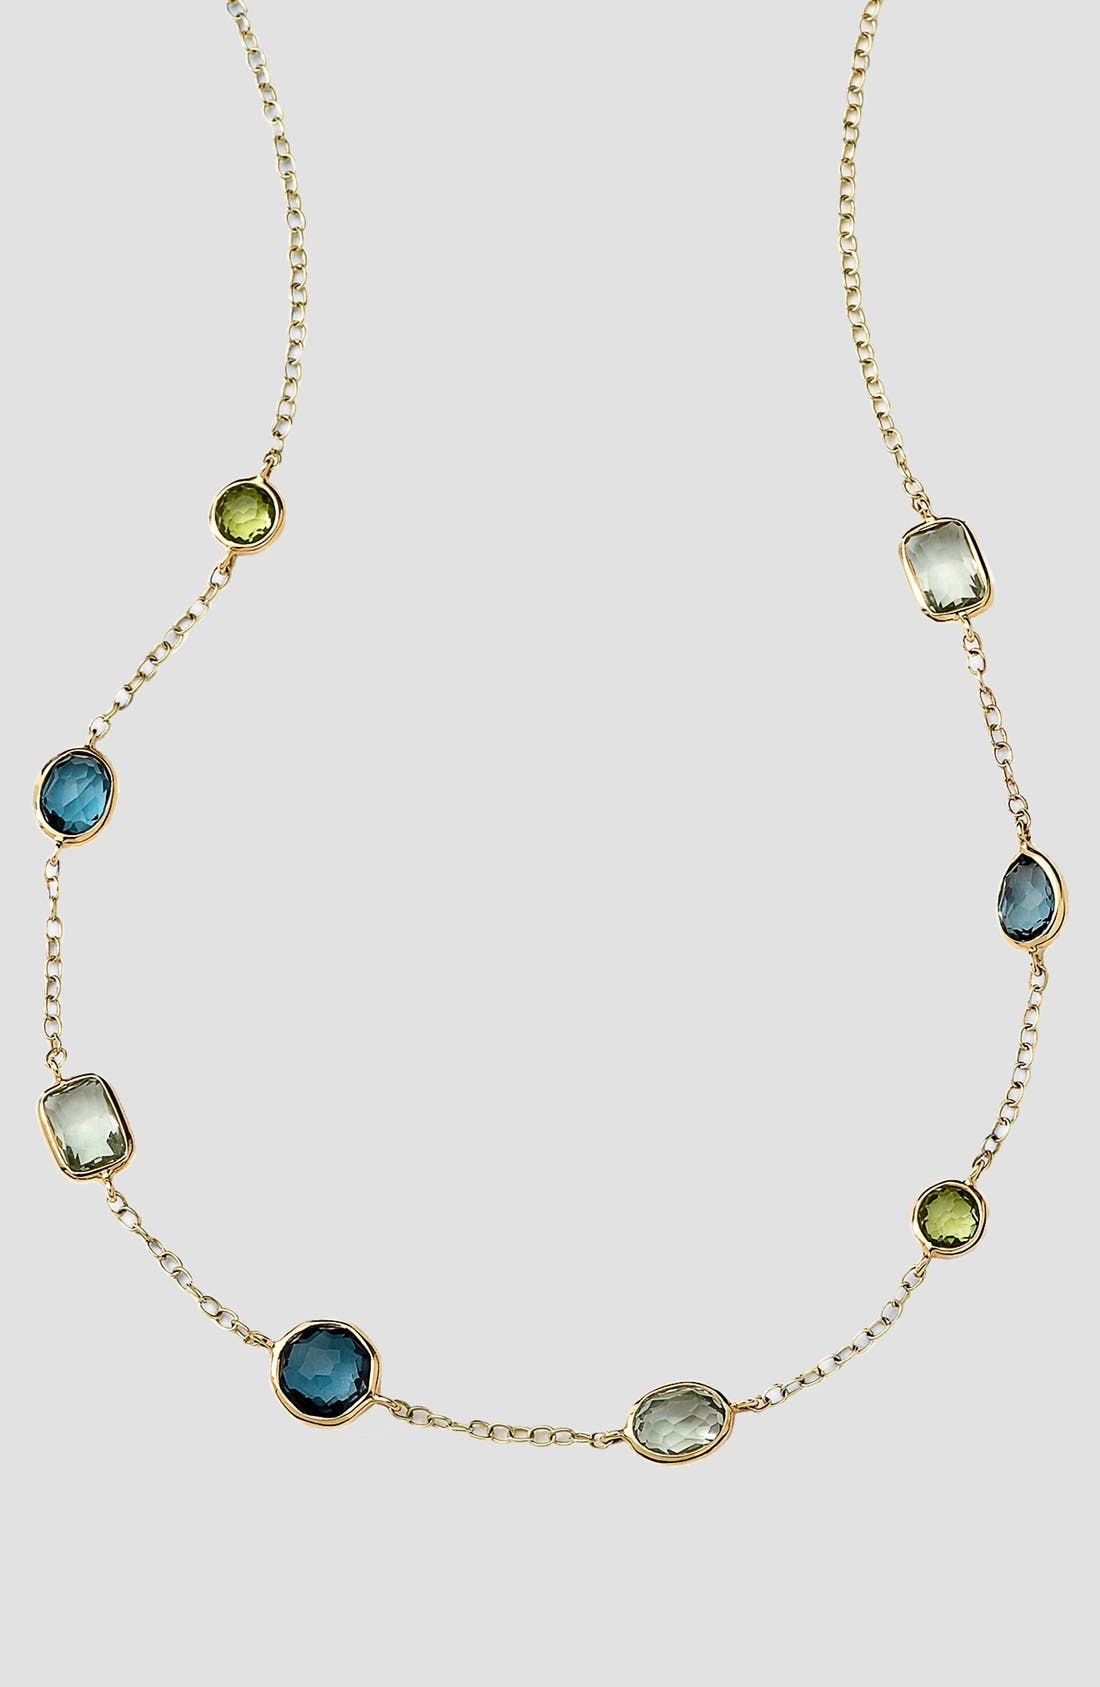 Main Image - Ippolita 'Rock Candy - Mini Gelato' 18k Gold Station Necklace